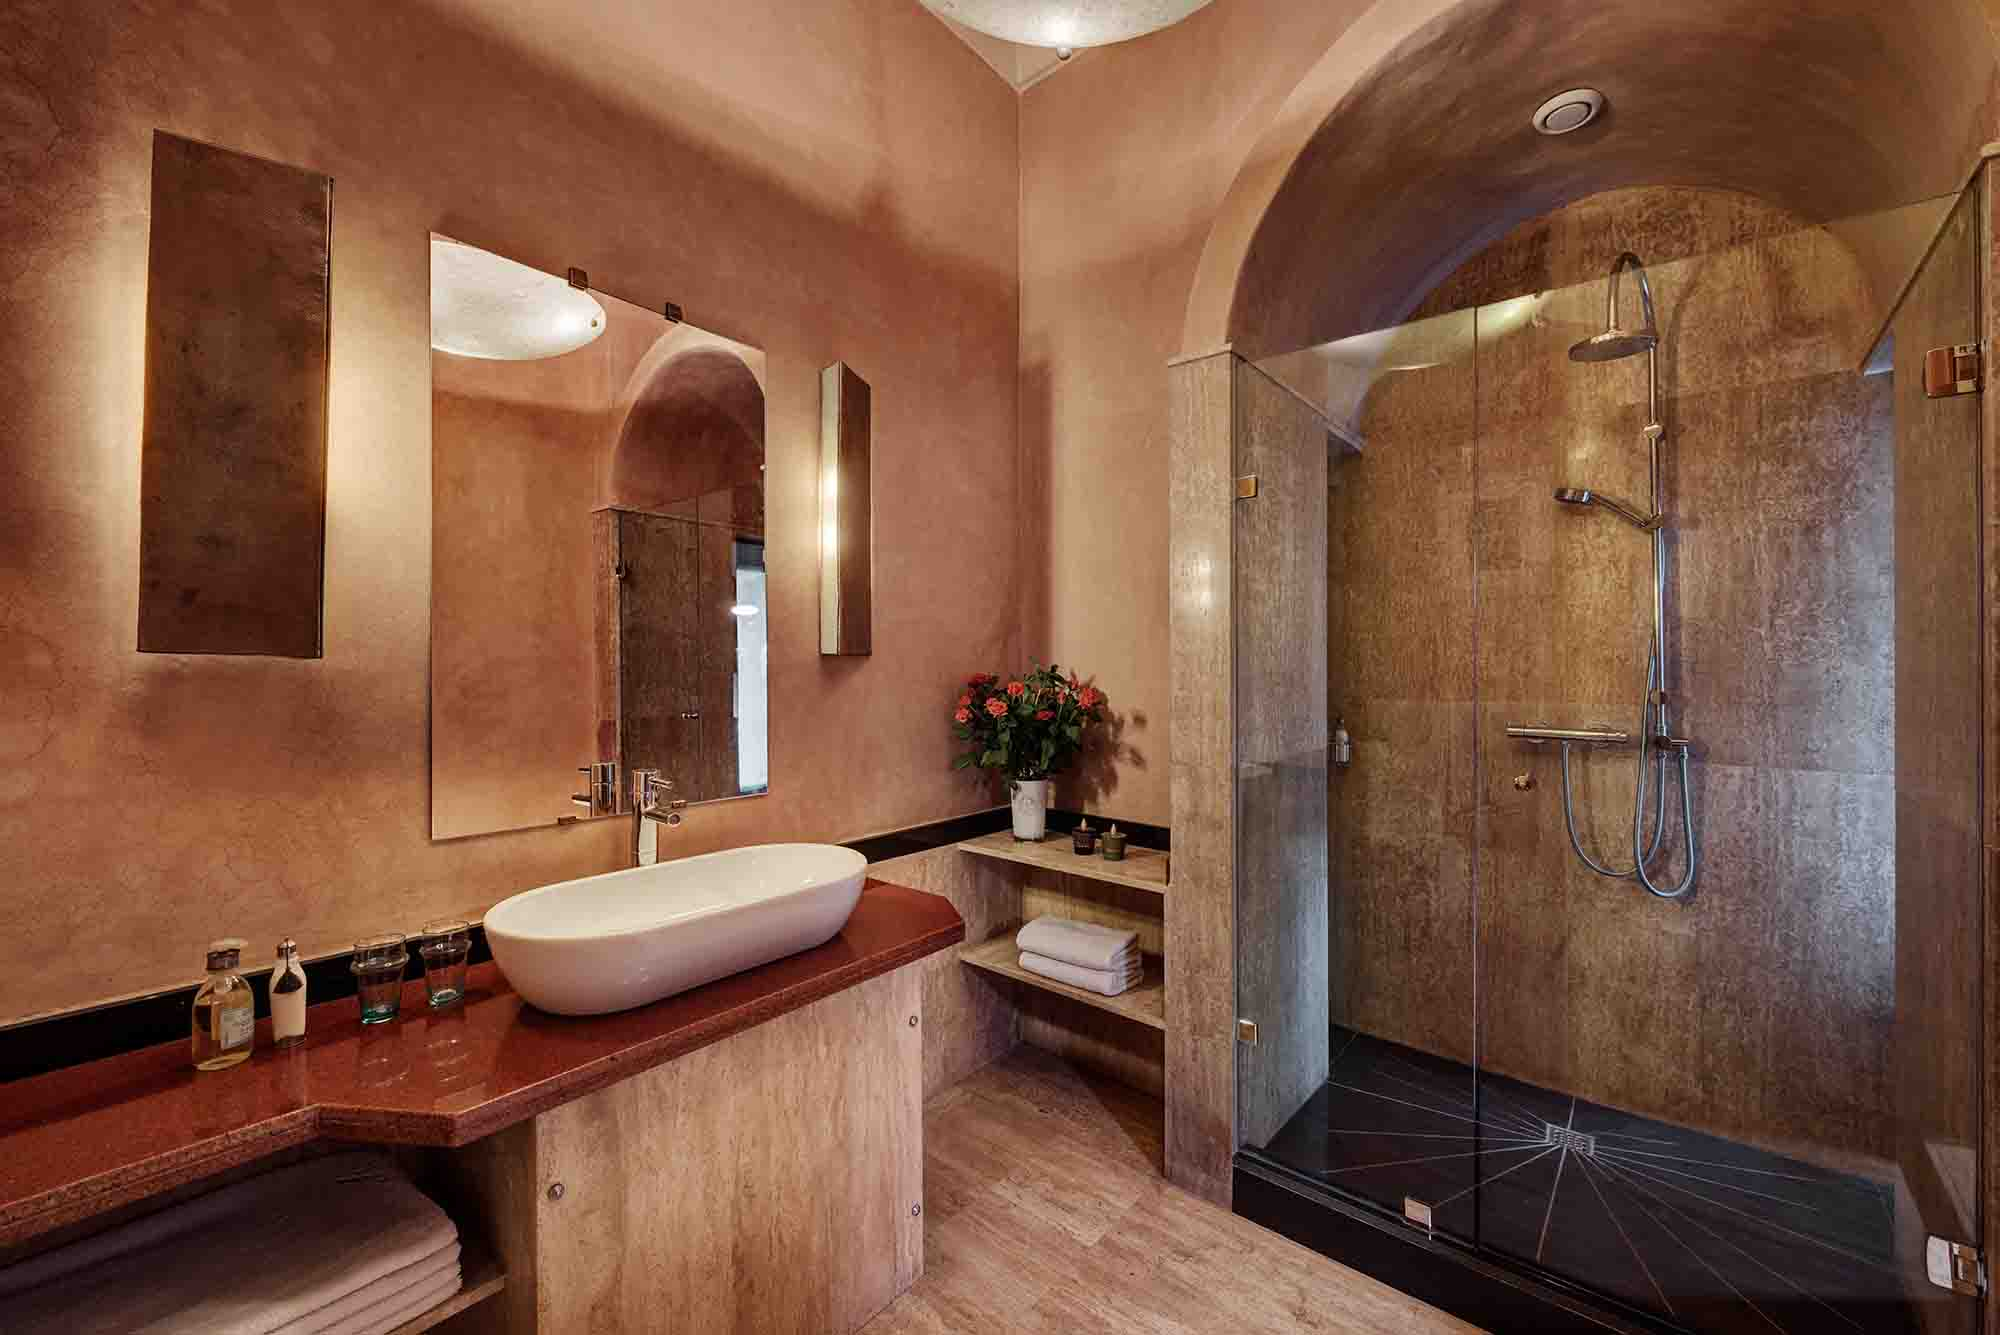 RIAD SIWAN GUEST HOUSE MARRAKECH BATHROOM